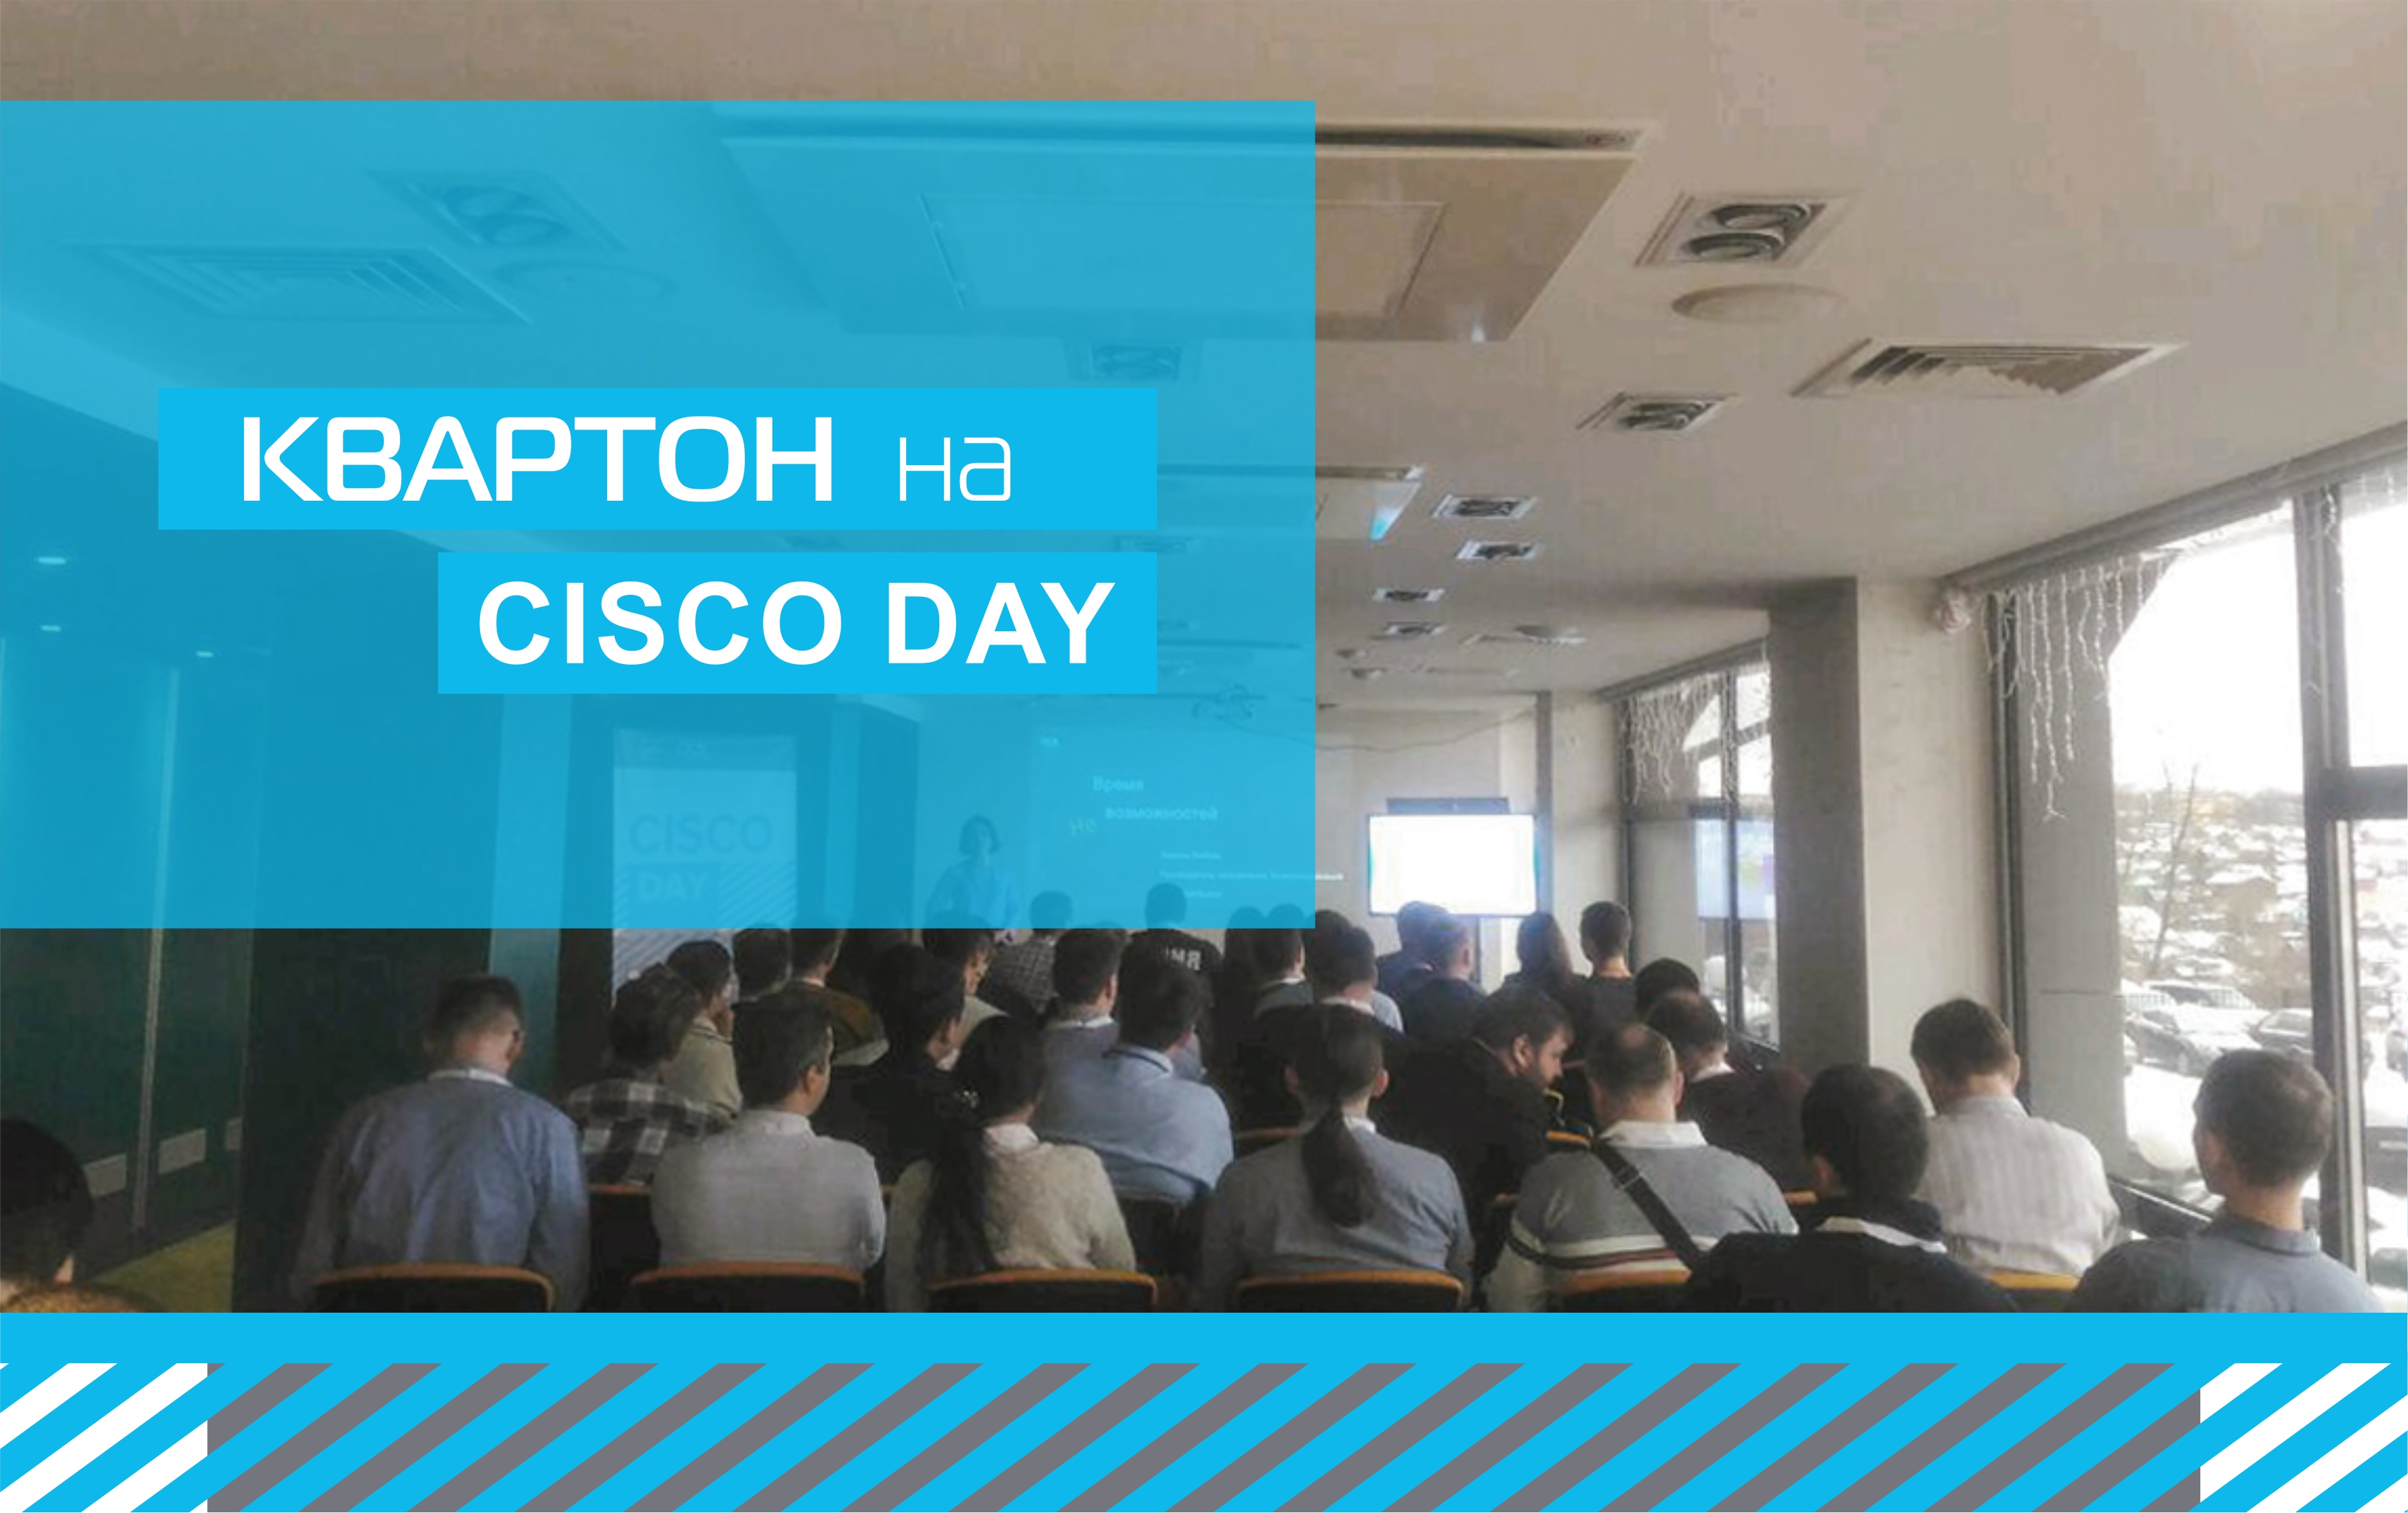 Cisco day: итоги